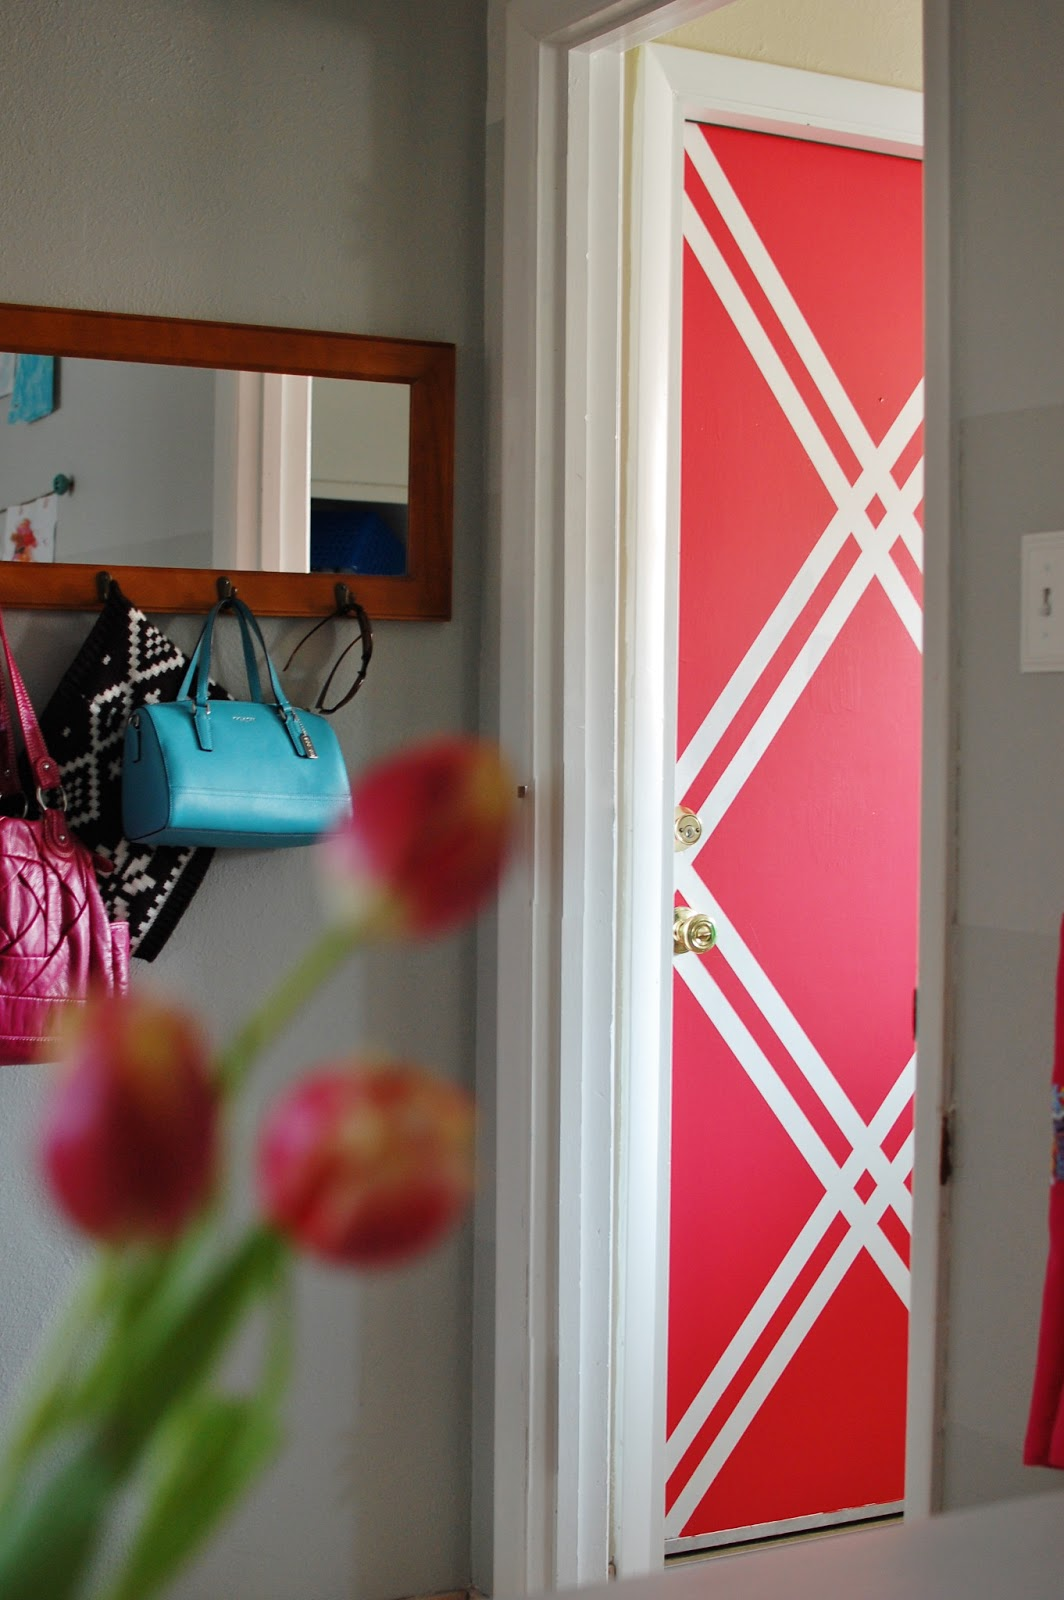 Easy Wall Designs With Tape Viewing Gallery